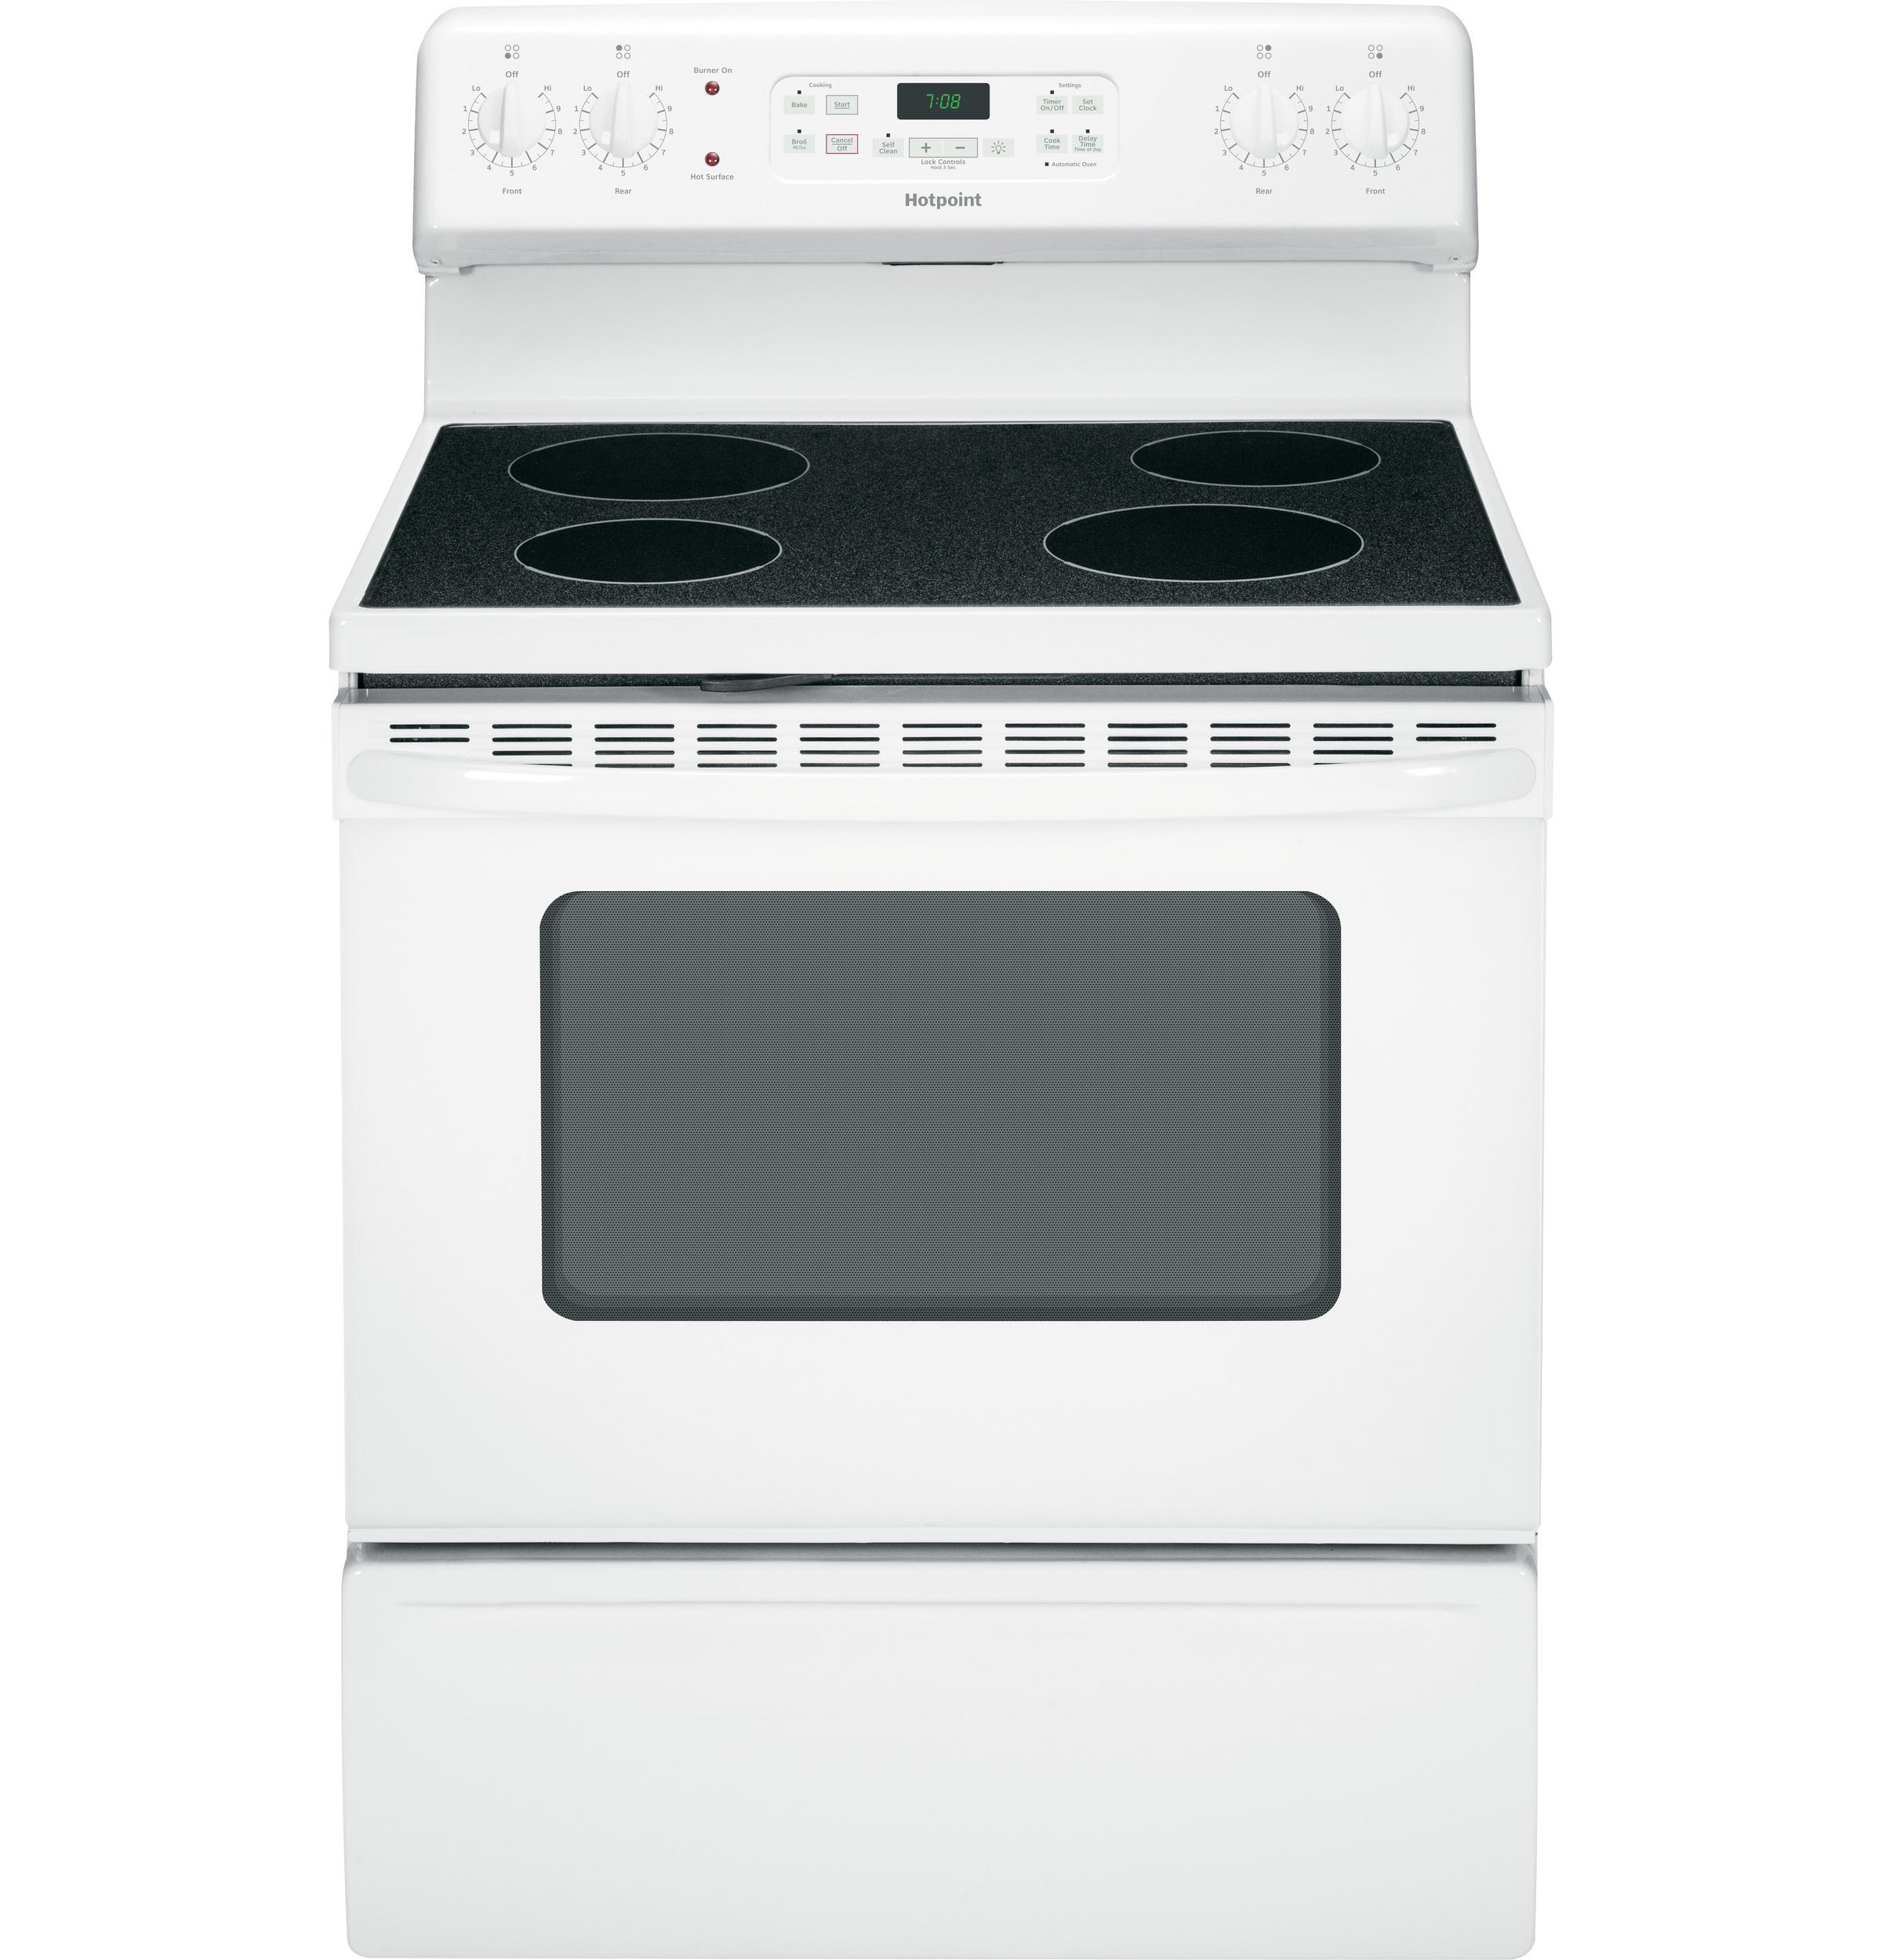 Rb780dh Hotpoint Rb780dh Electric Ranges